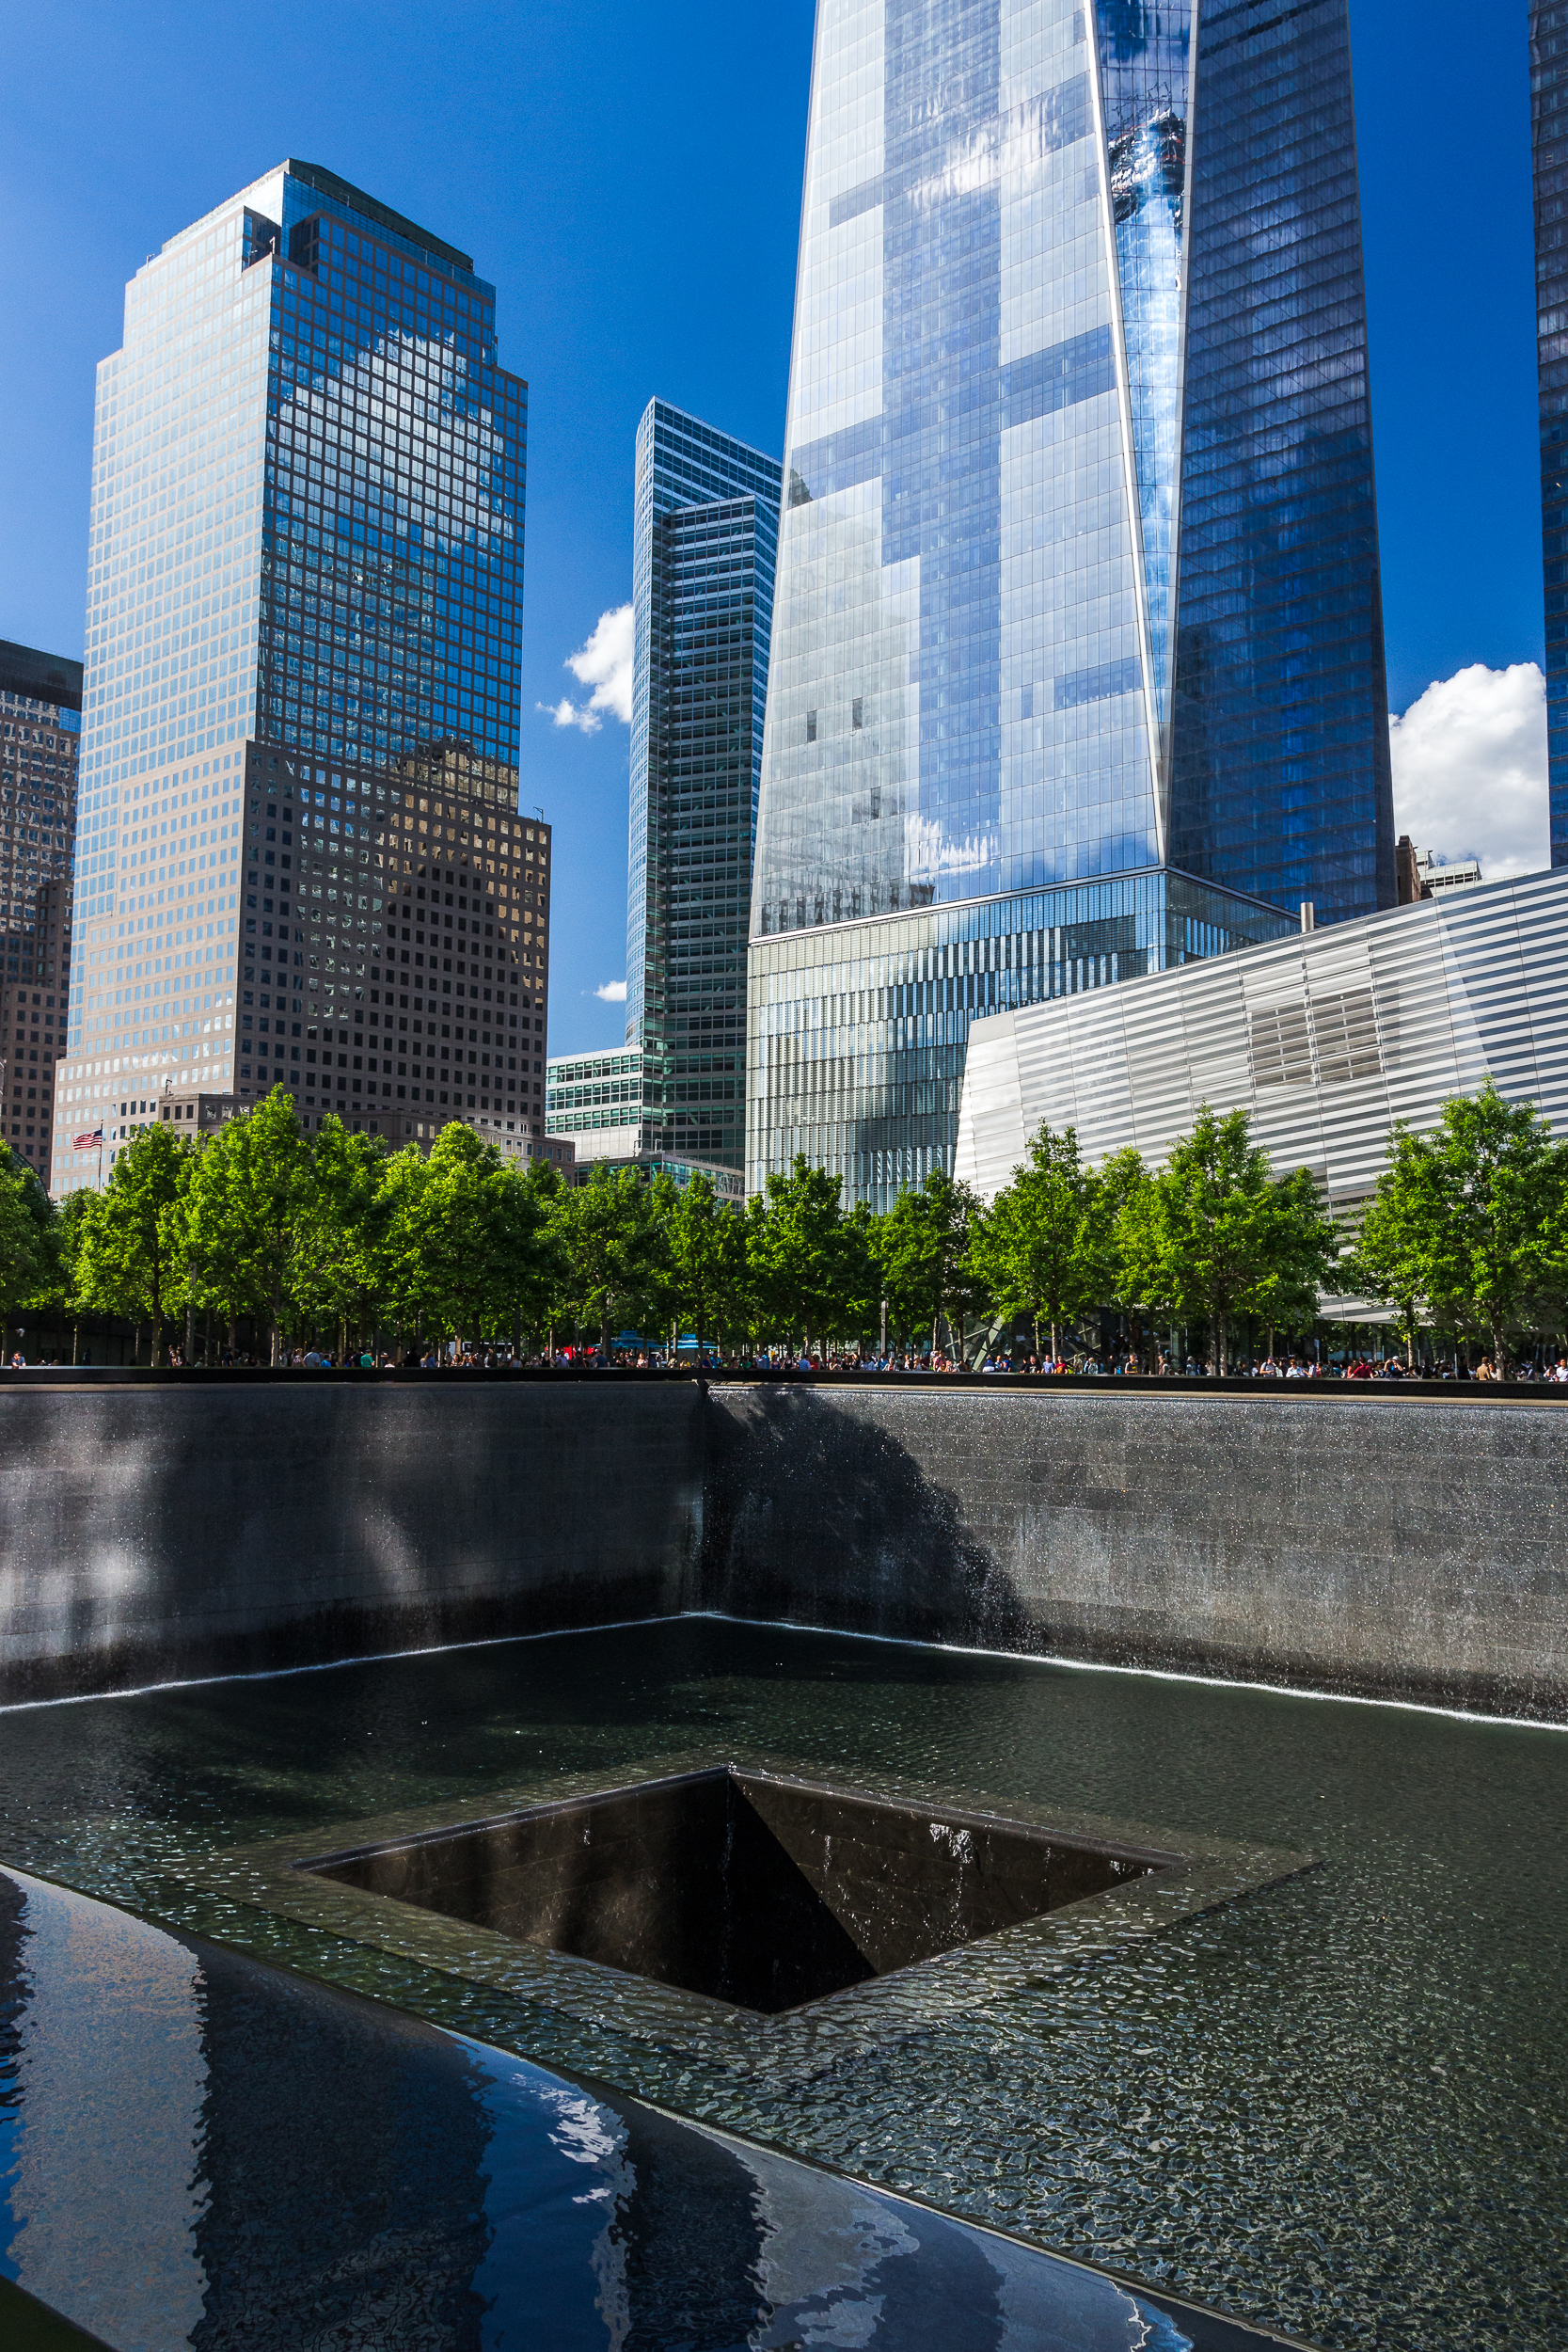 An infinity pool at one of the tower footprints at Ground Zero.